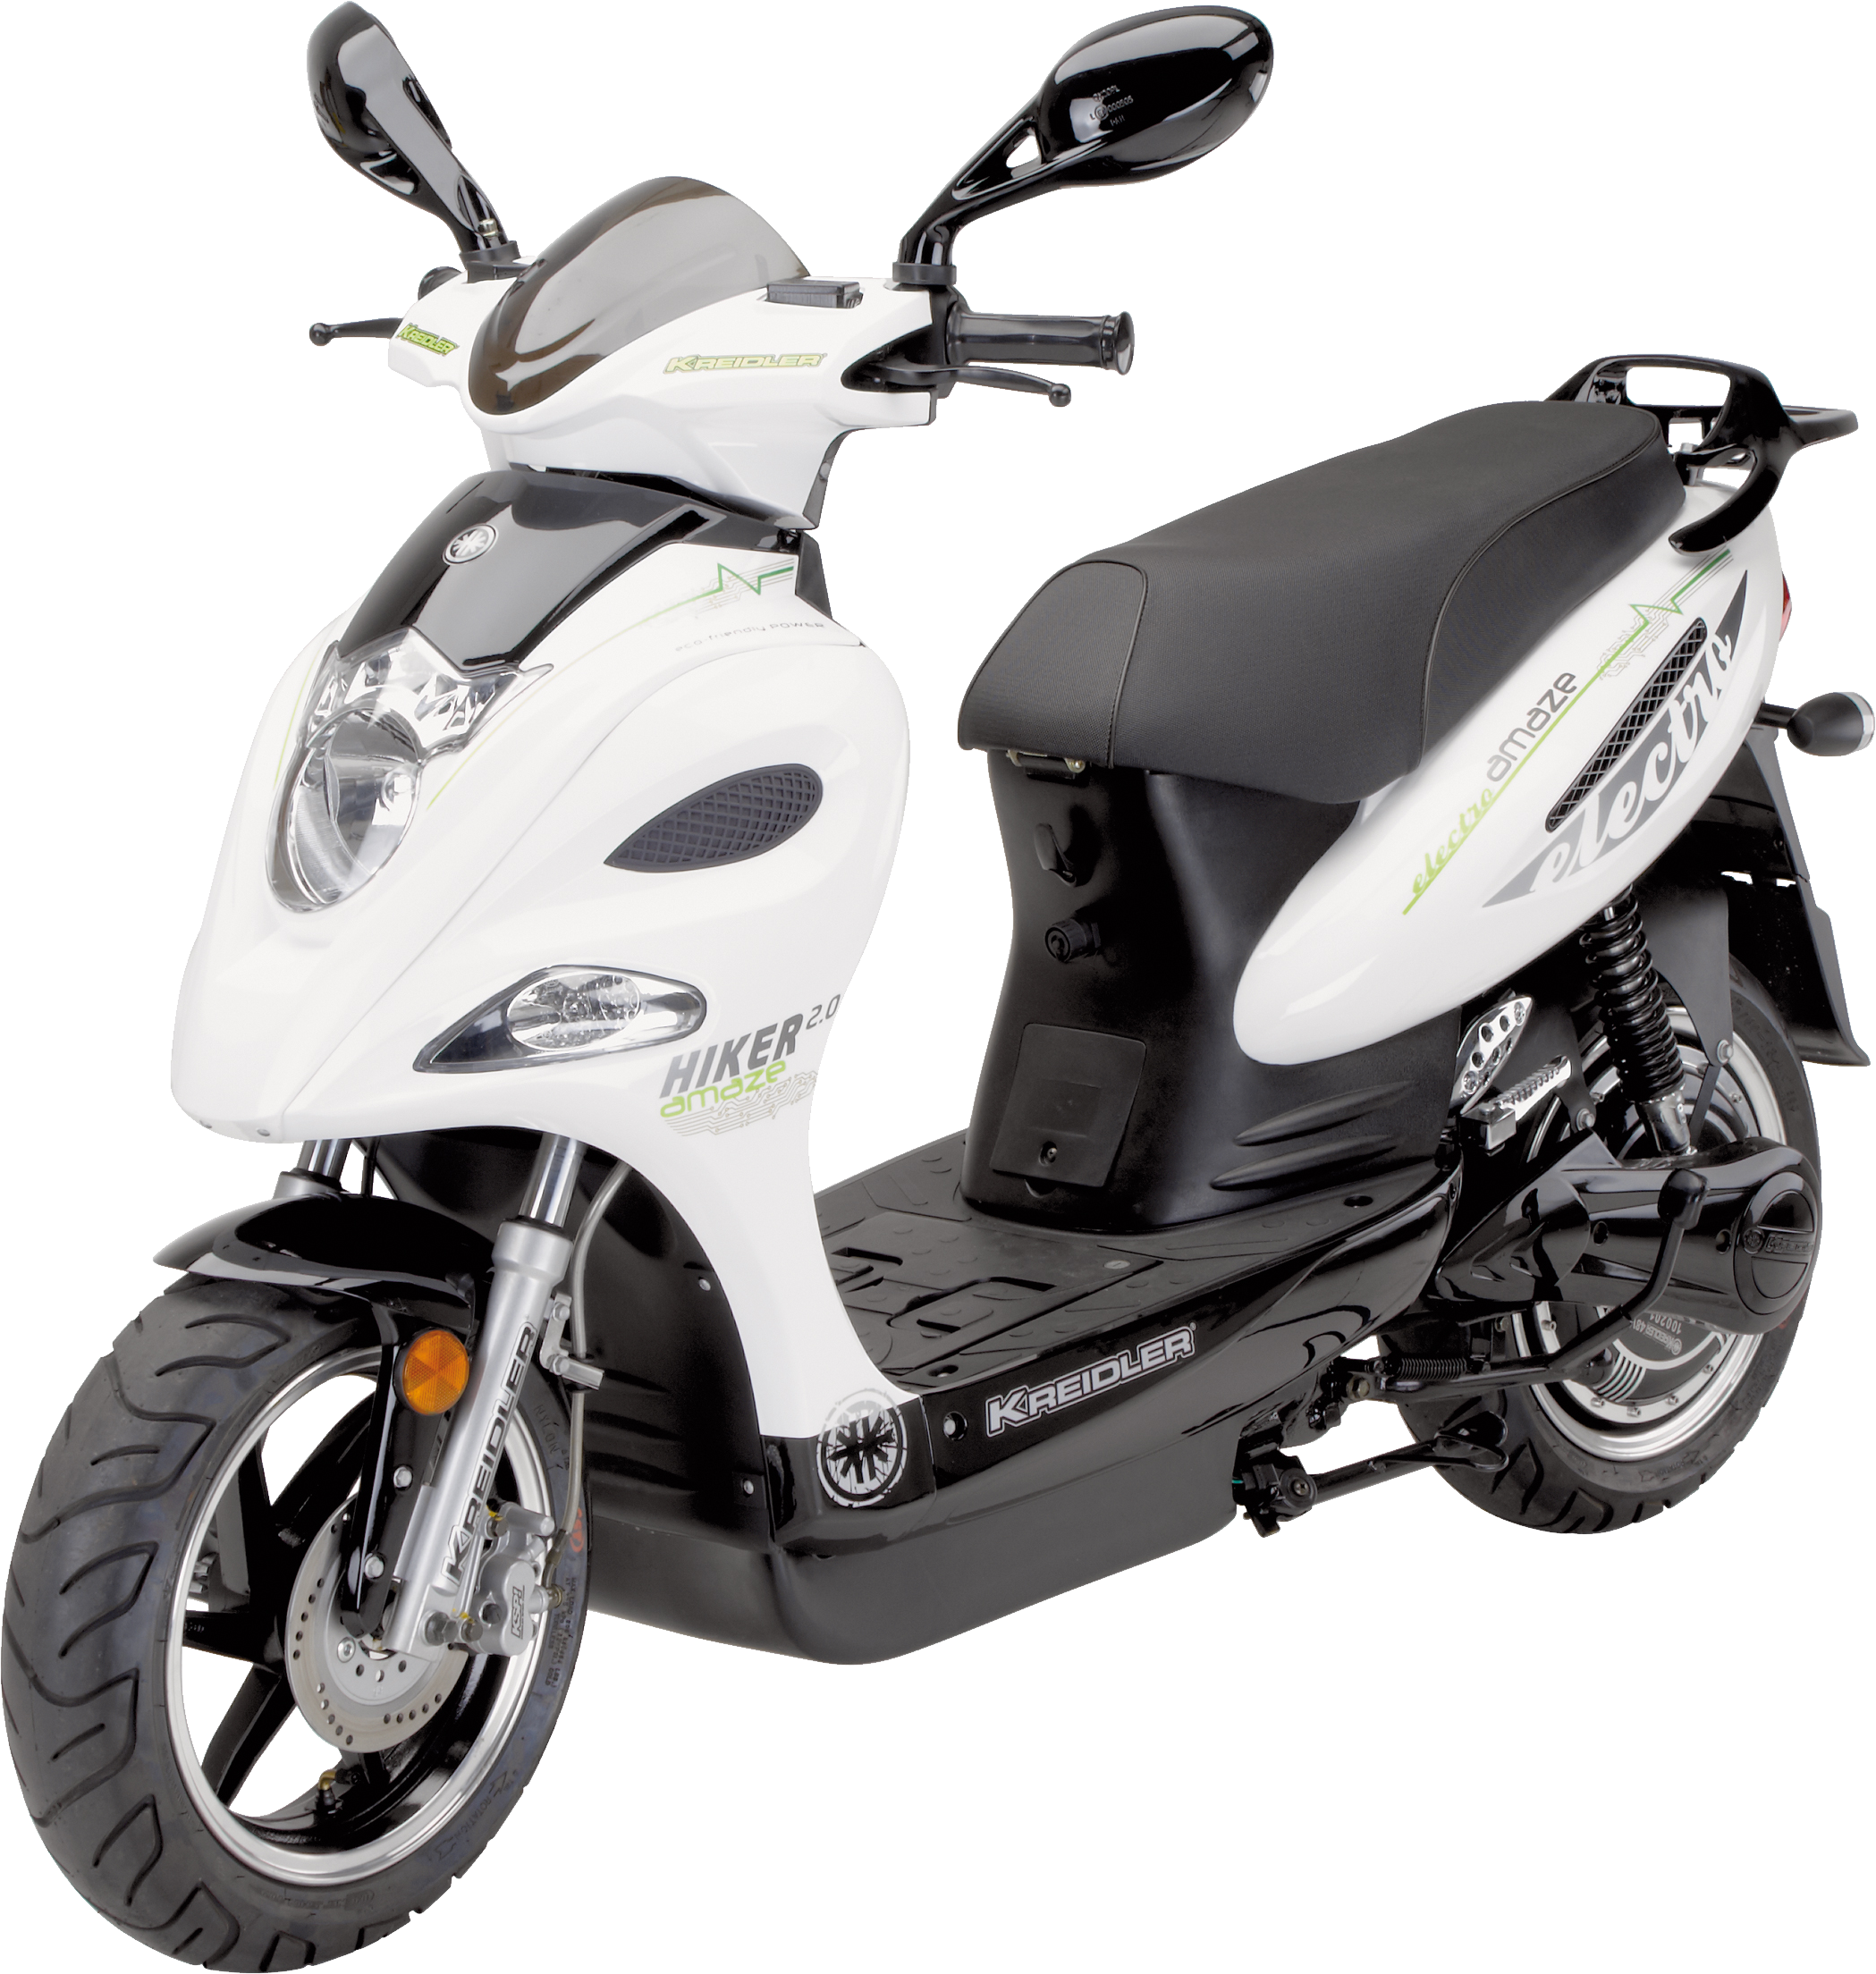 Scooter PNG images free download.